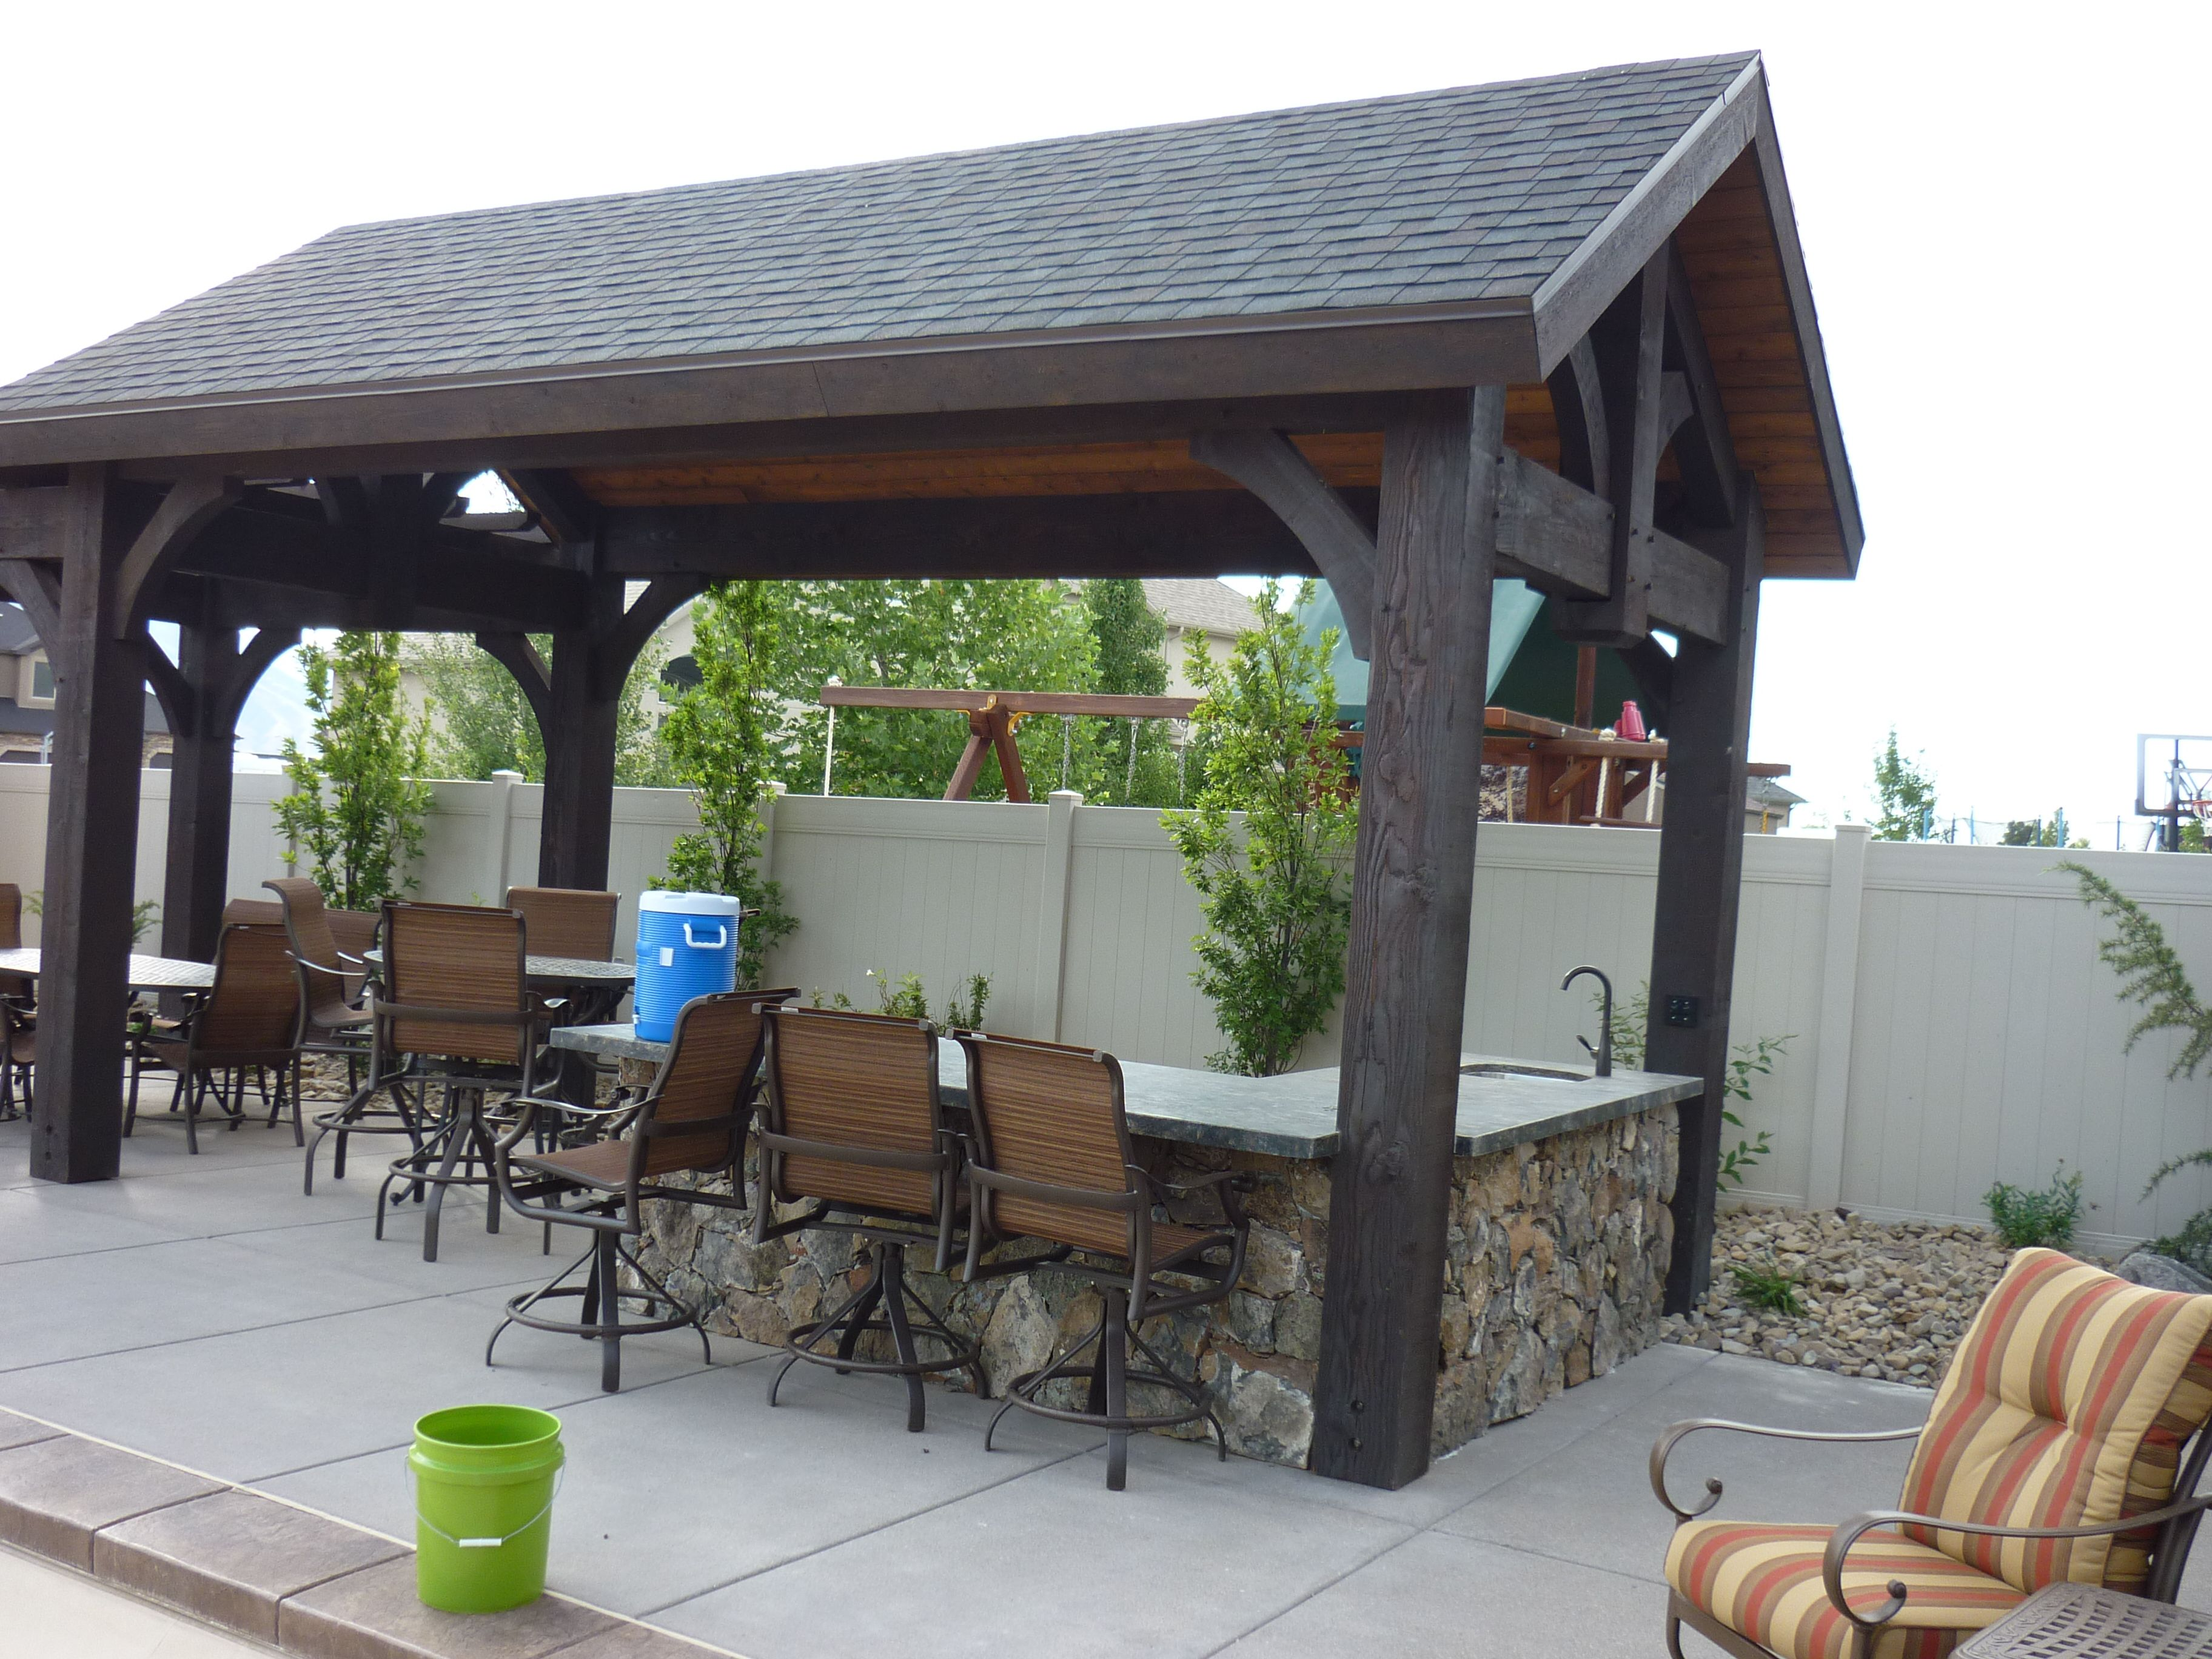 Covered Outdoor Kitchen Google Search Outdoor Kitchen Pinterest – Outdoor Covered Kitchens